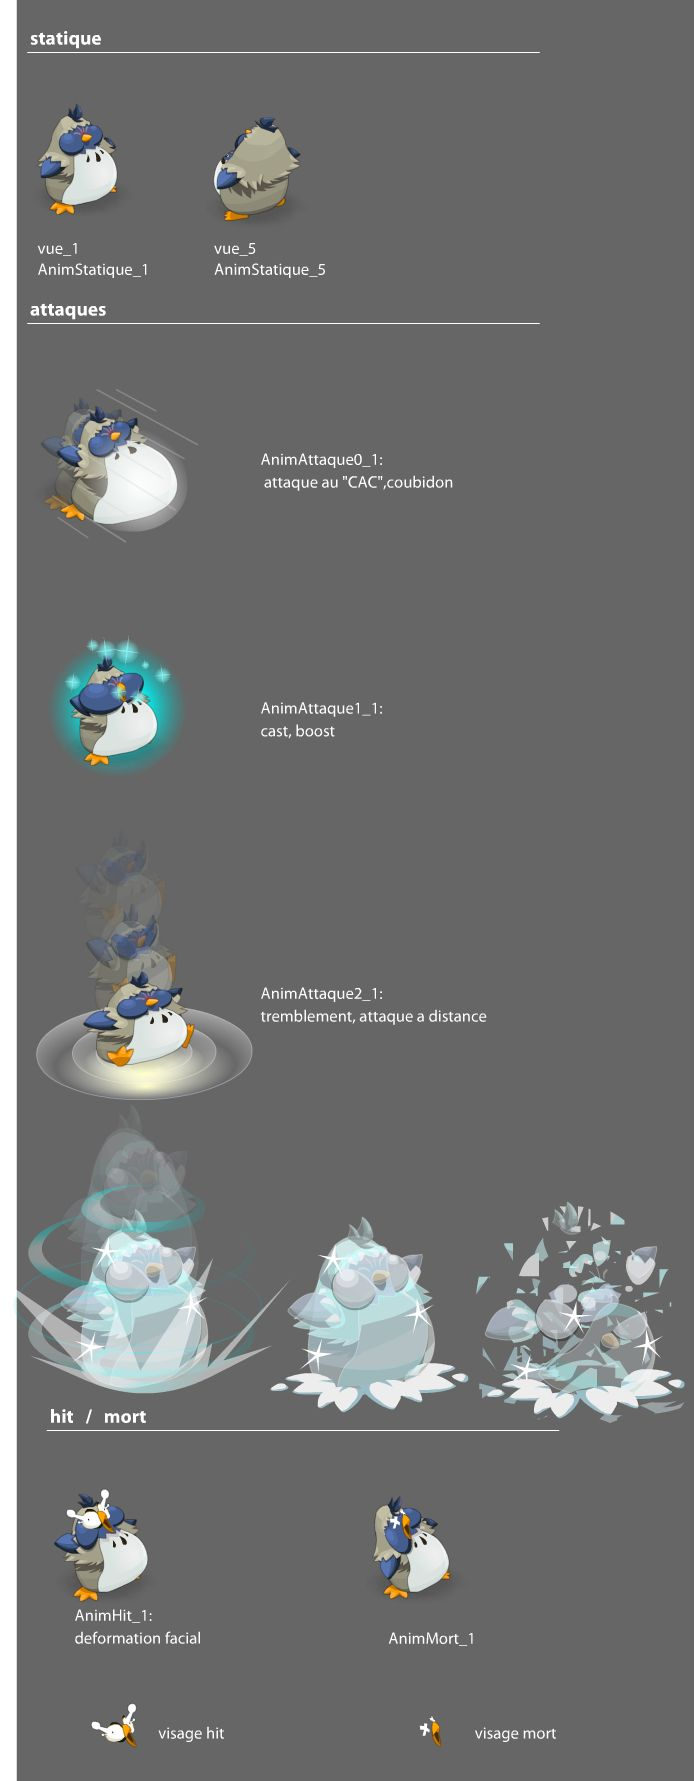 fiches d'animations